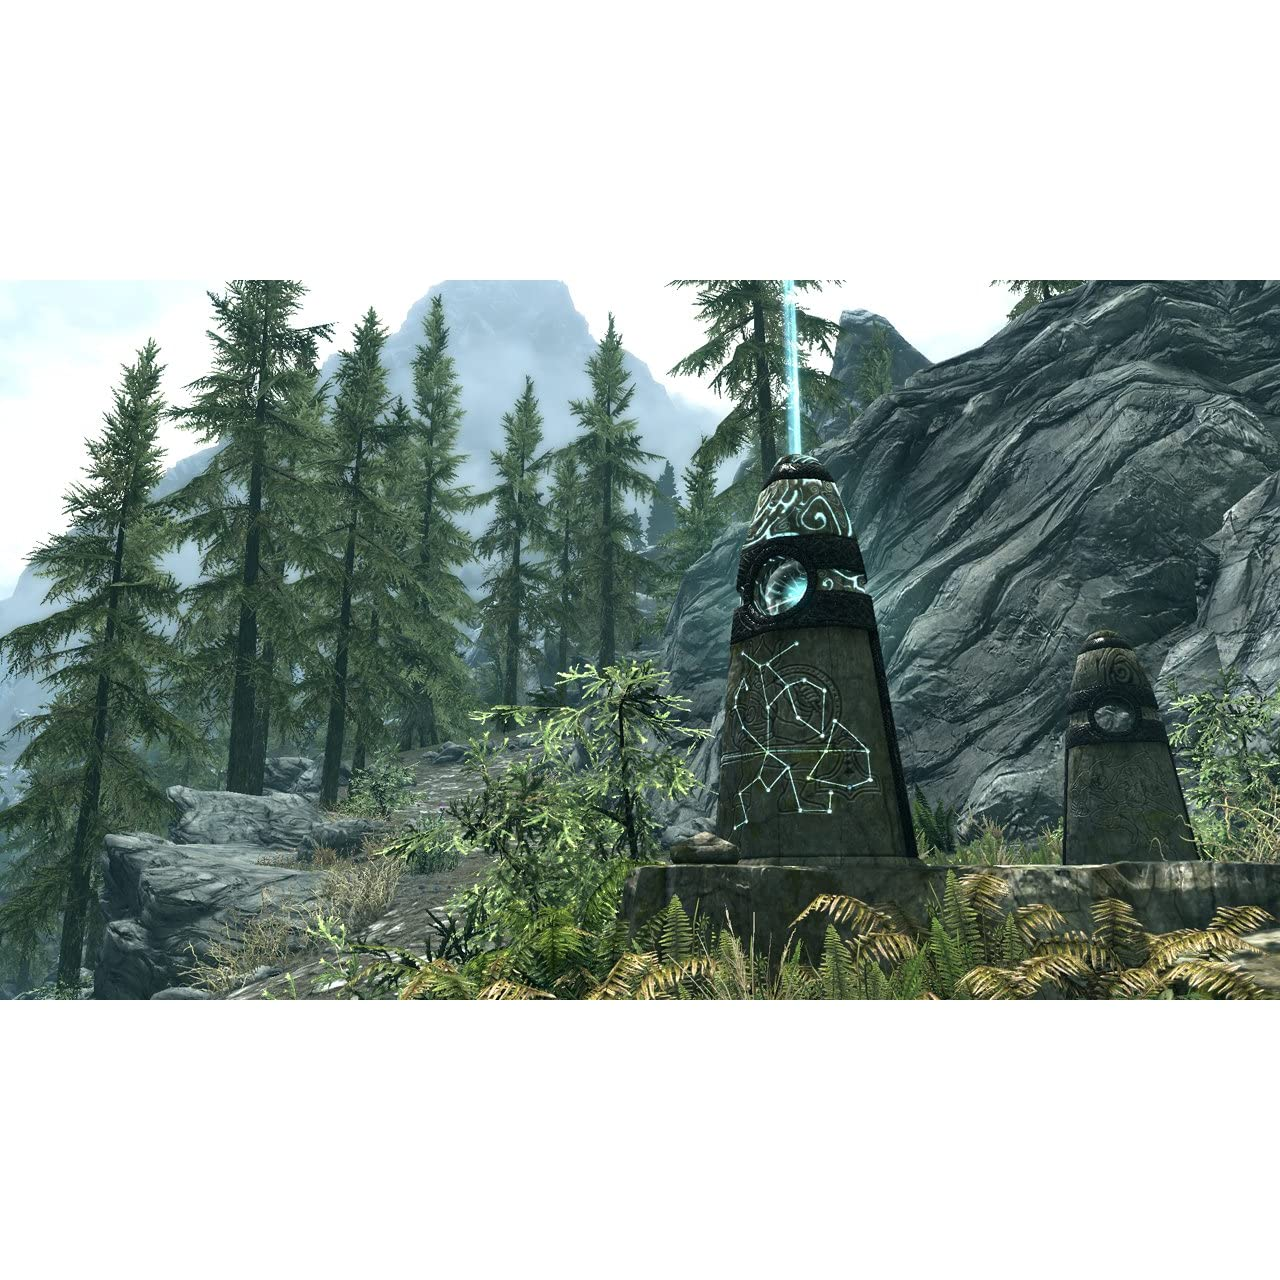 Online Game, Online Games, Video Game, Video Games, Rpg, Xbox 360, PC, PlayStation 3, PS3, Role Playing, Role-Playing, Elder Scrolls V: Skyrim